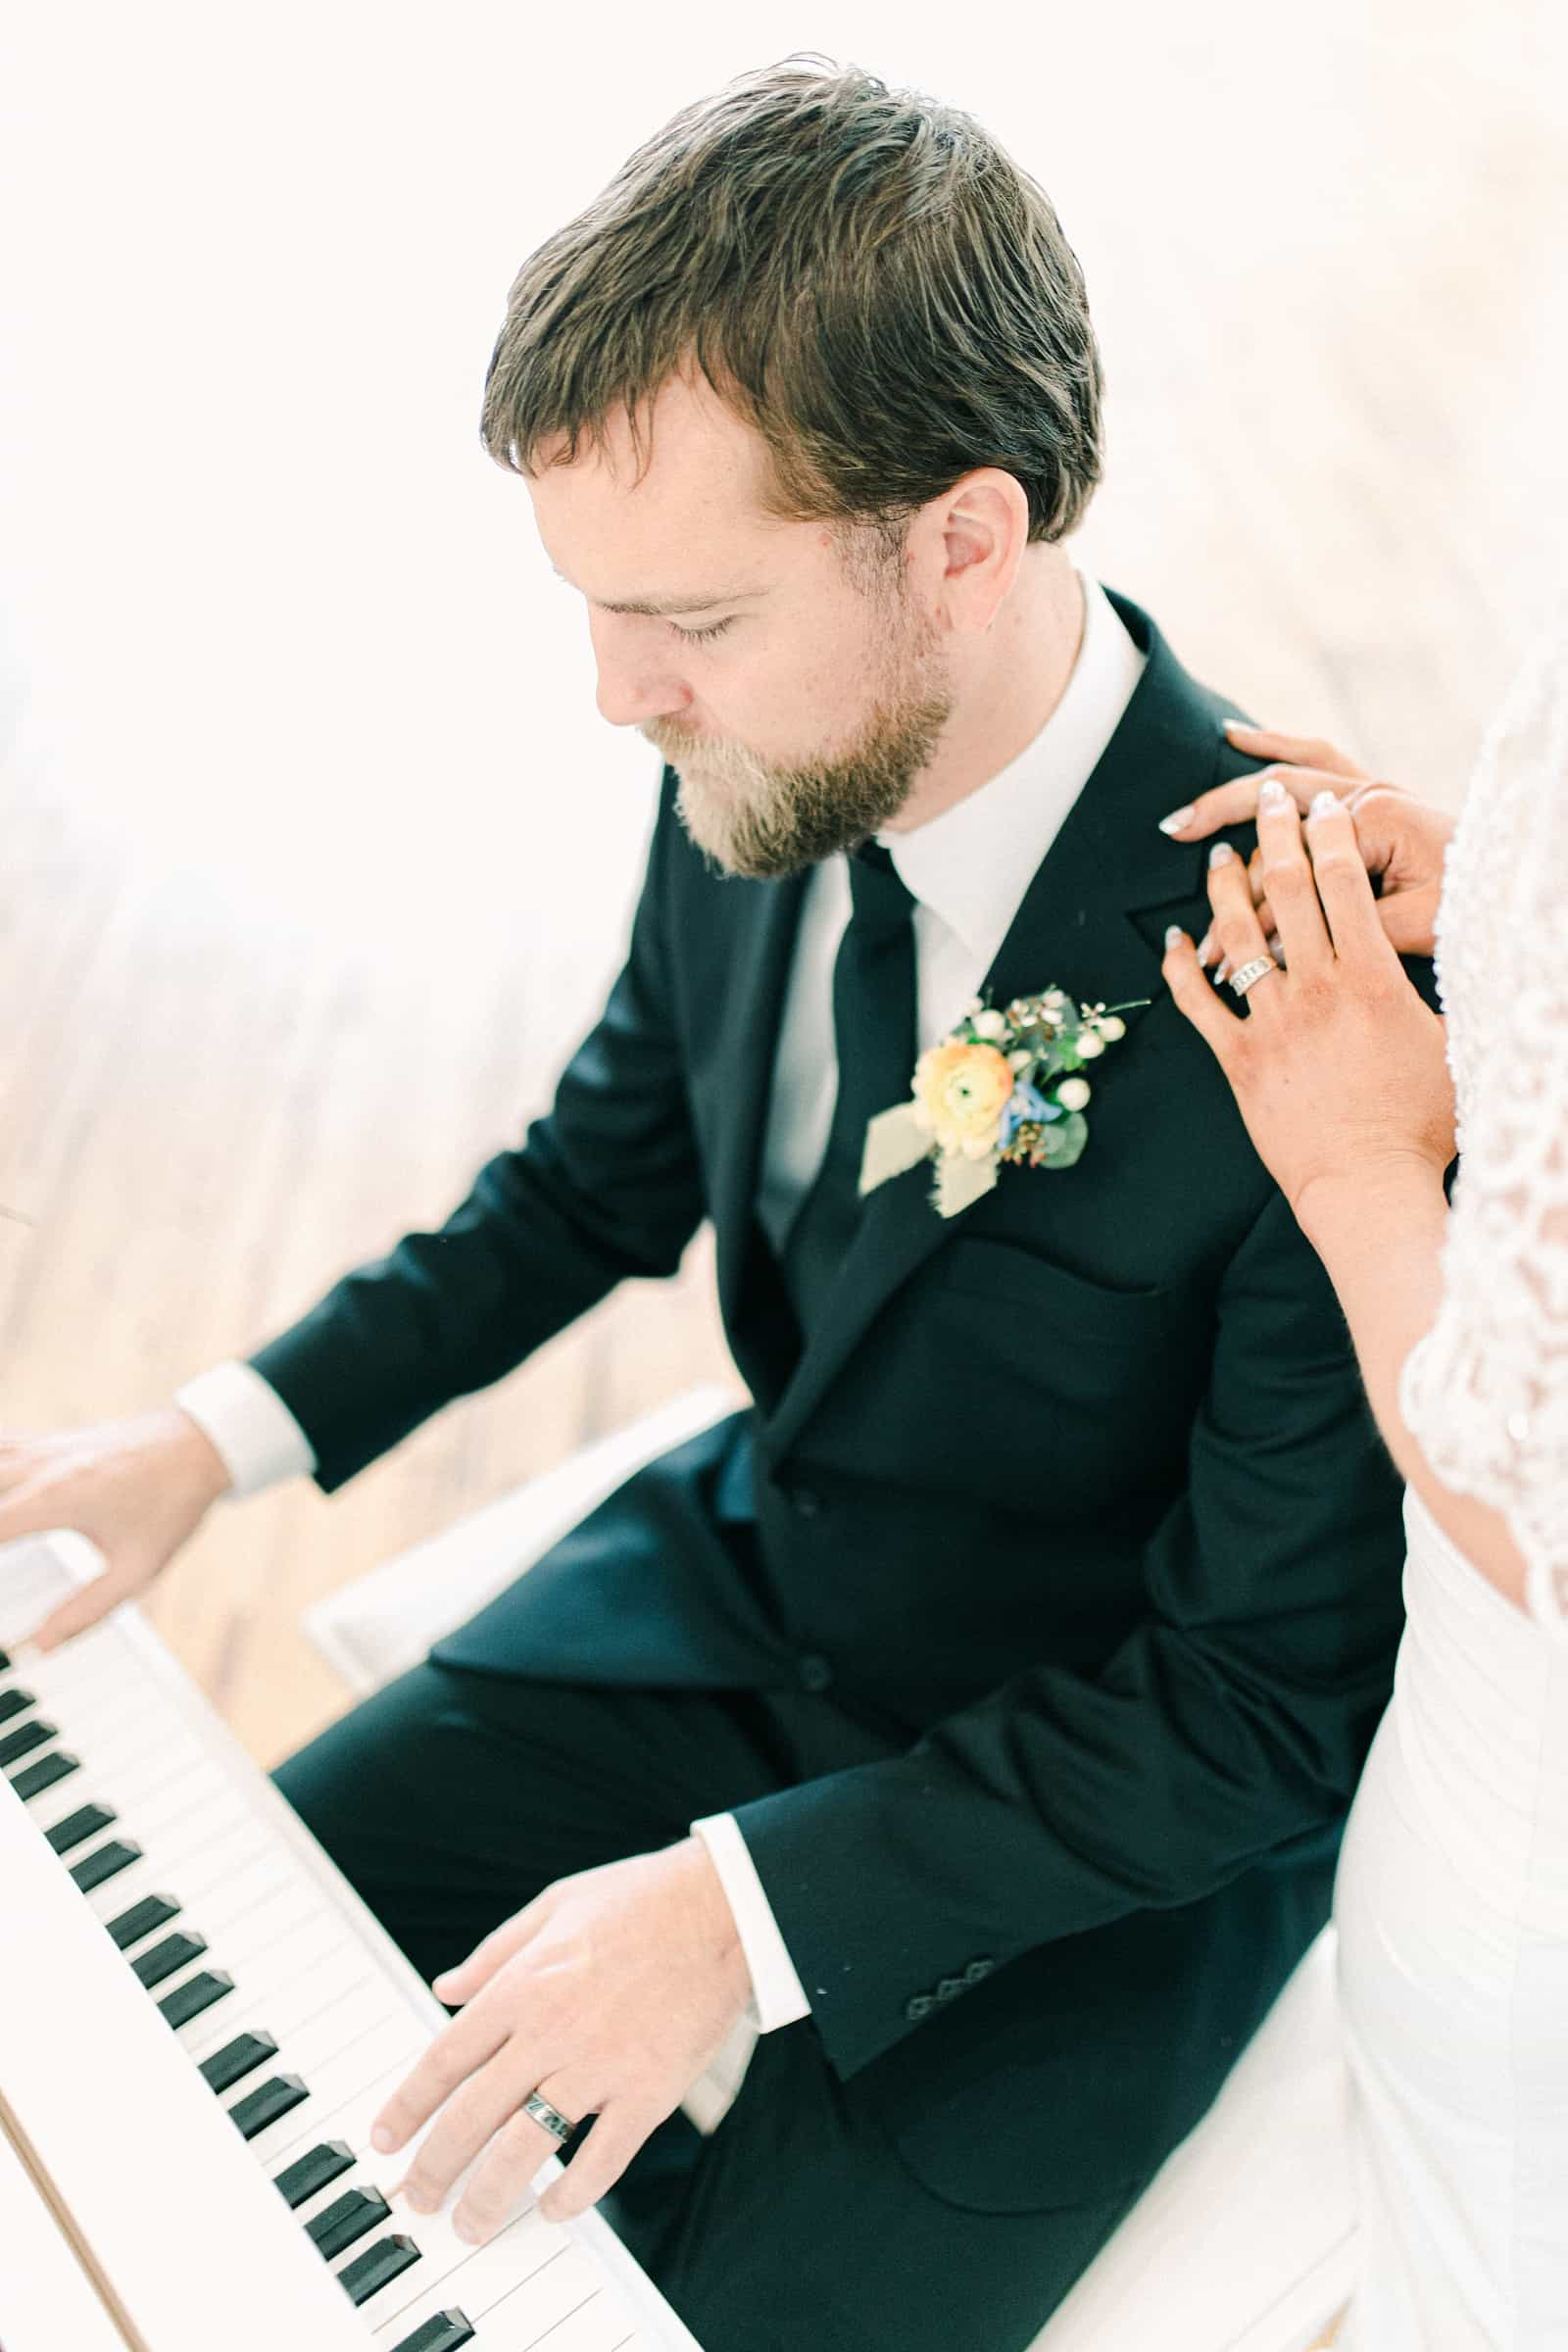 Groom plays white baby grand piano for bride on their wedding day, groom in classic black suit with black tie